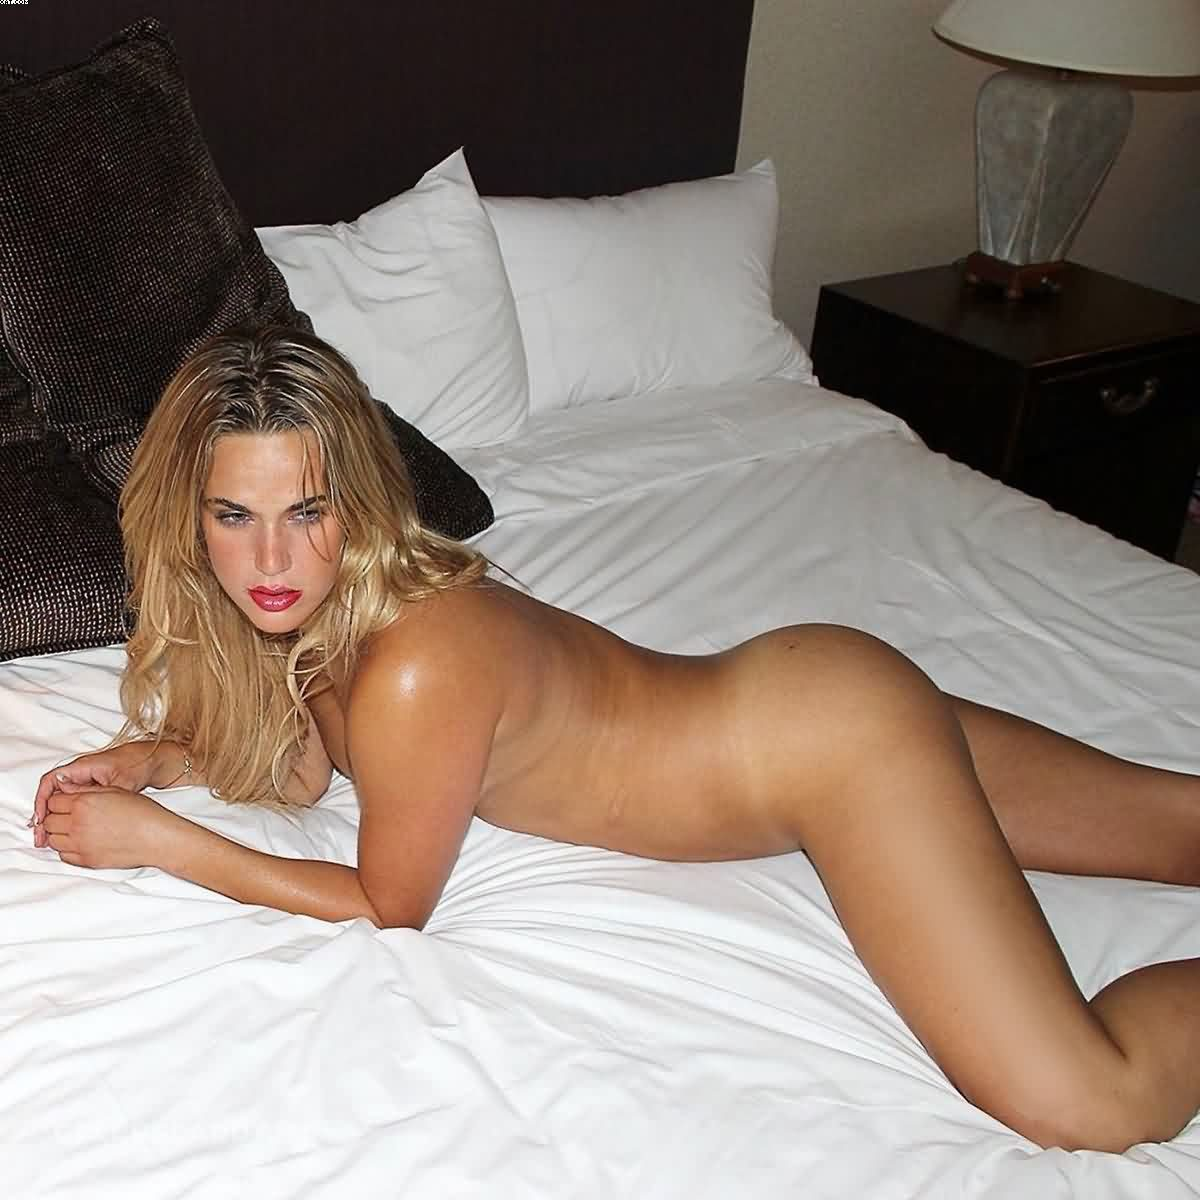 50+ Nude Photos Of CJ Perry Or Better Known As Lana Of WWE